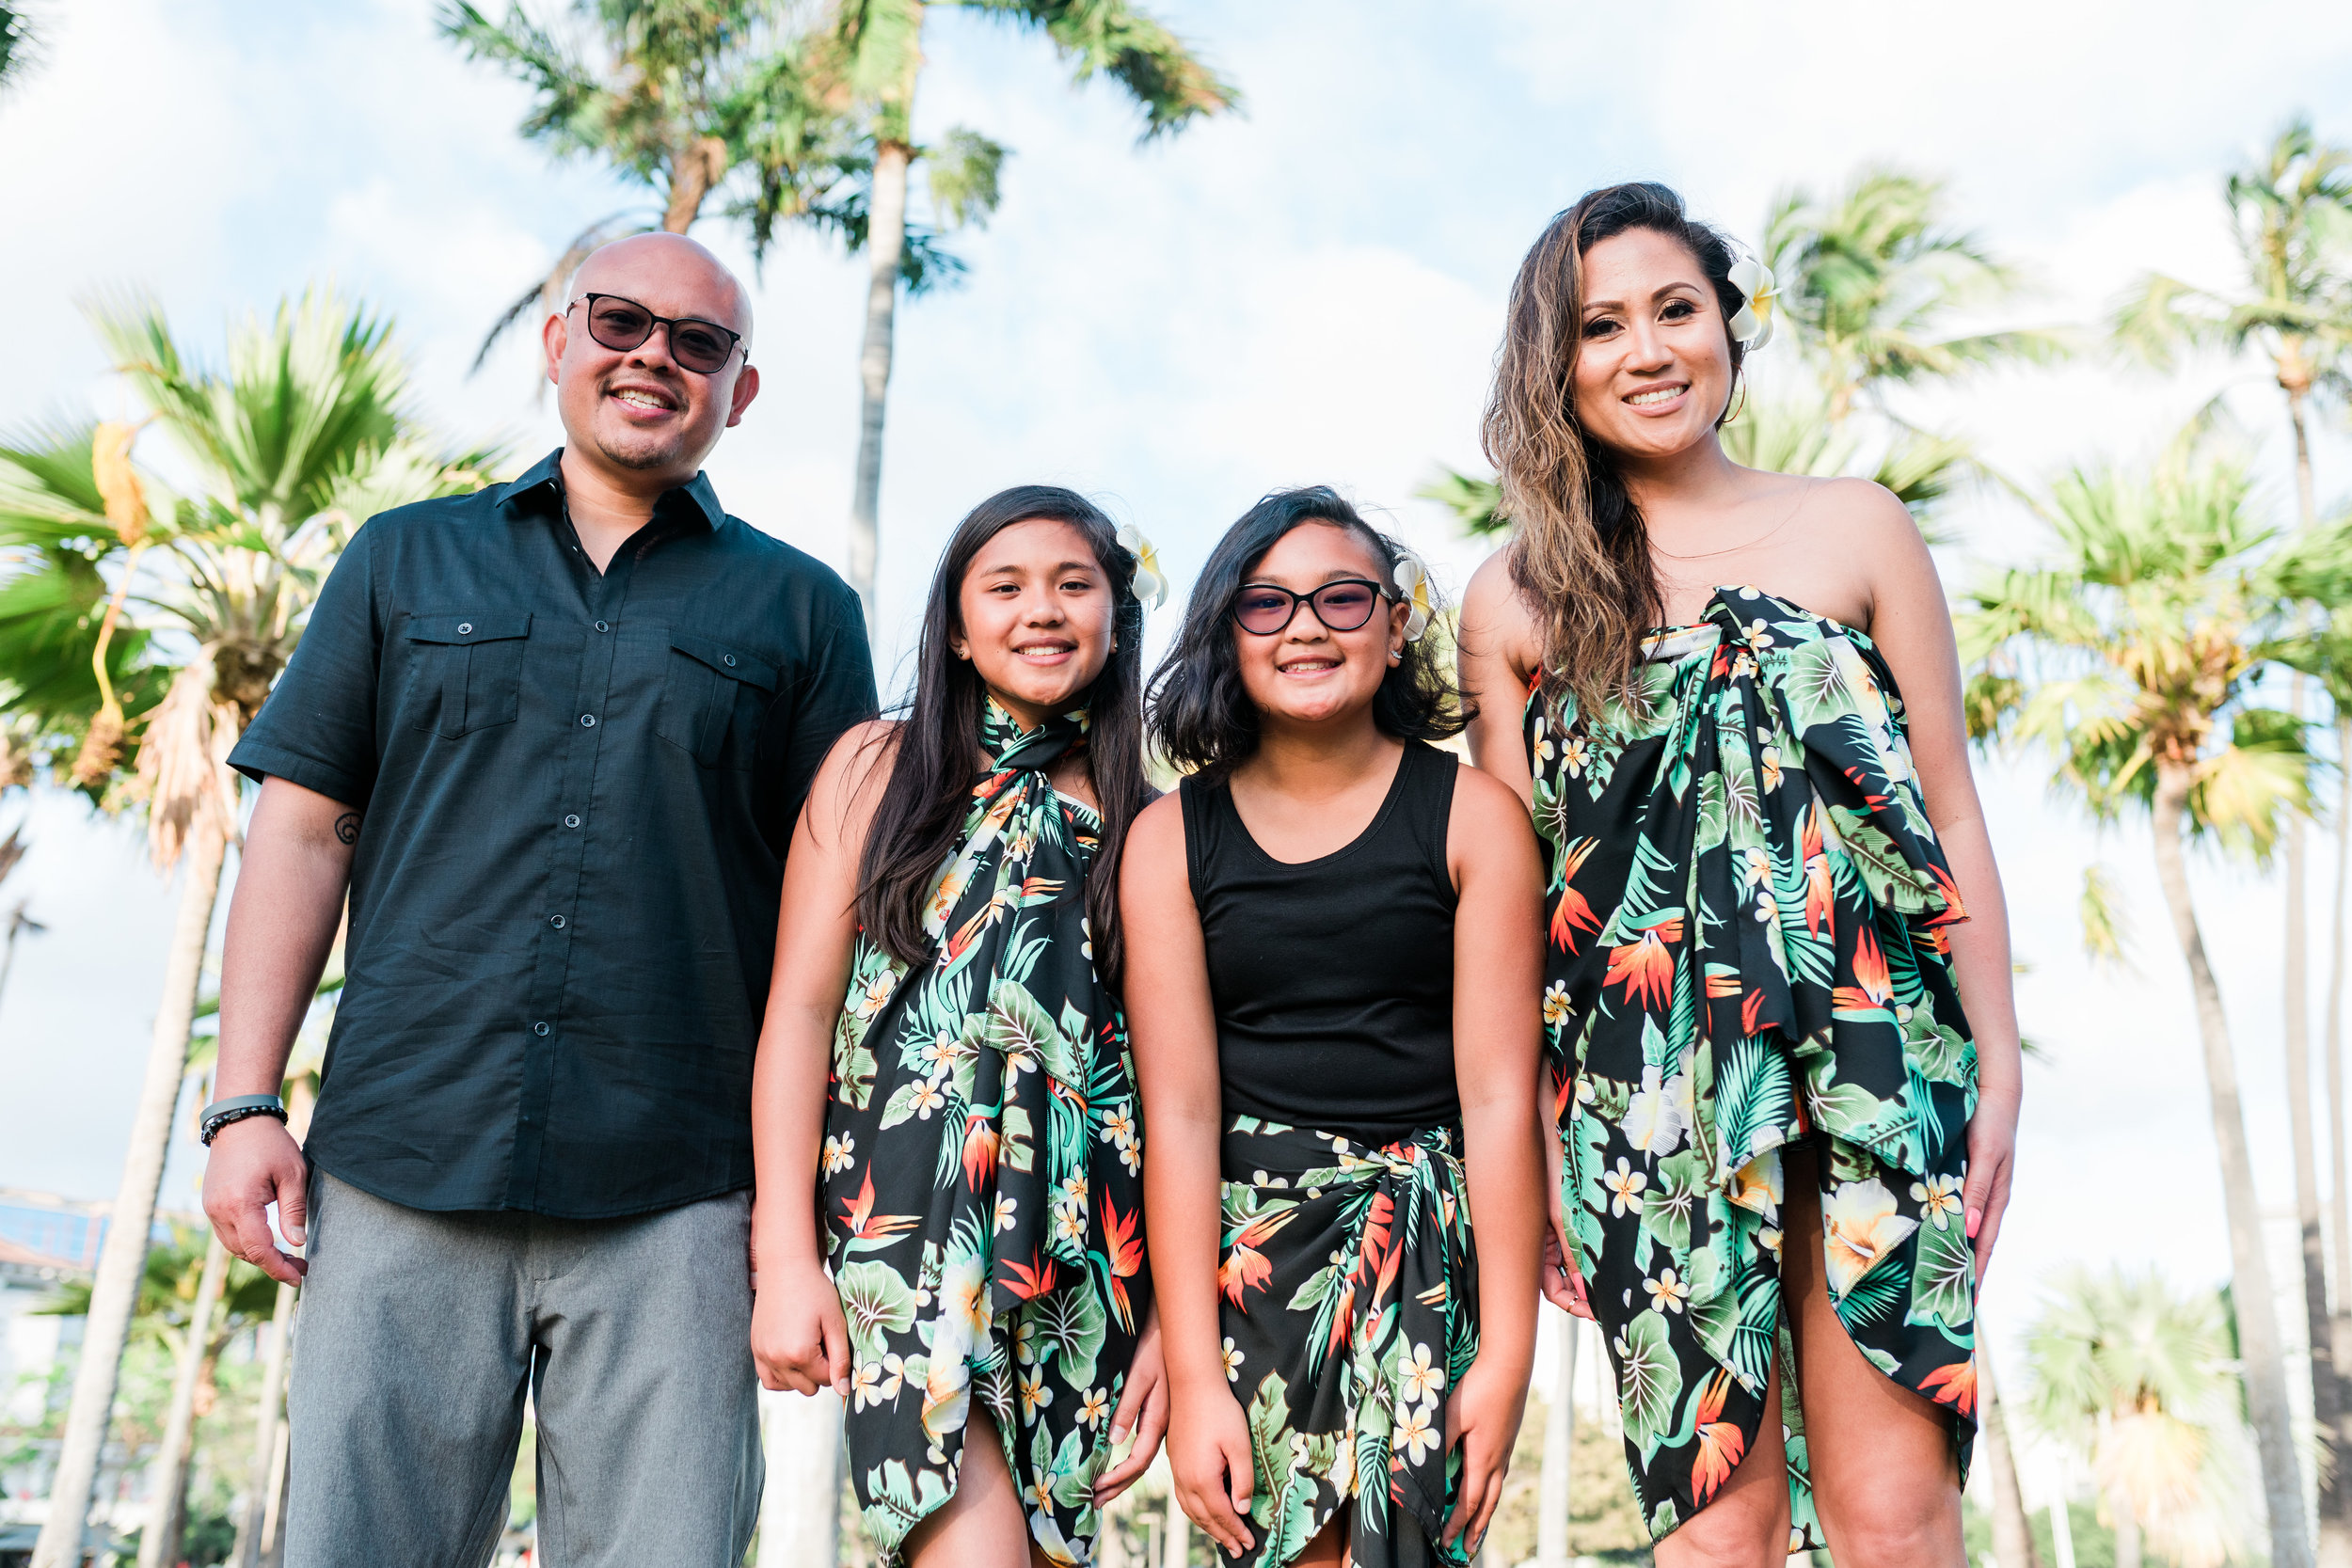 Hawaii Family Photography - Calamic - Syamsu Family-4.jpg